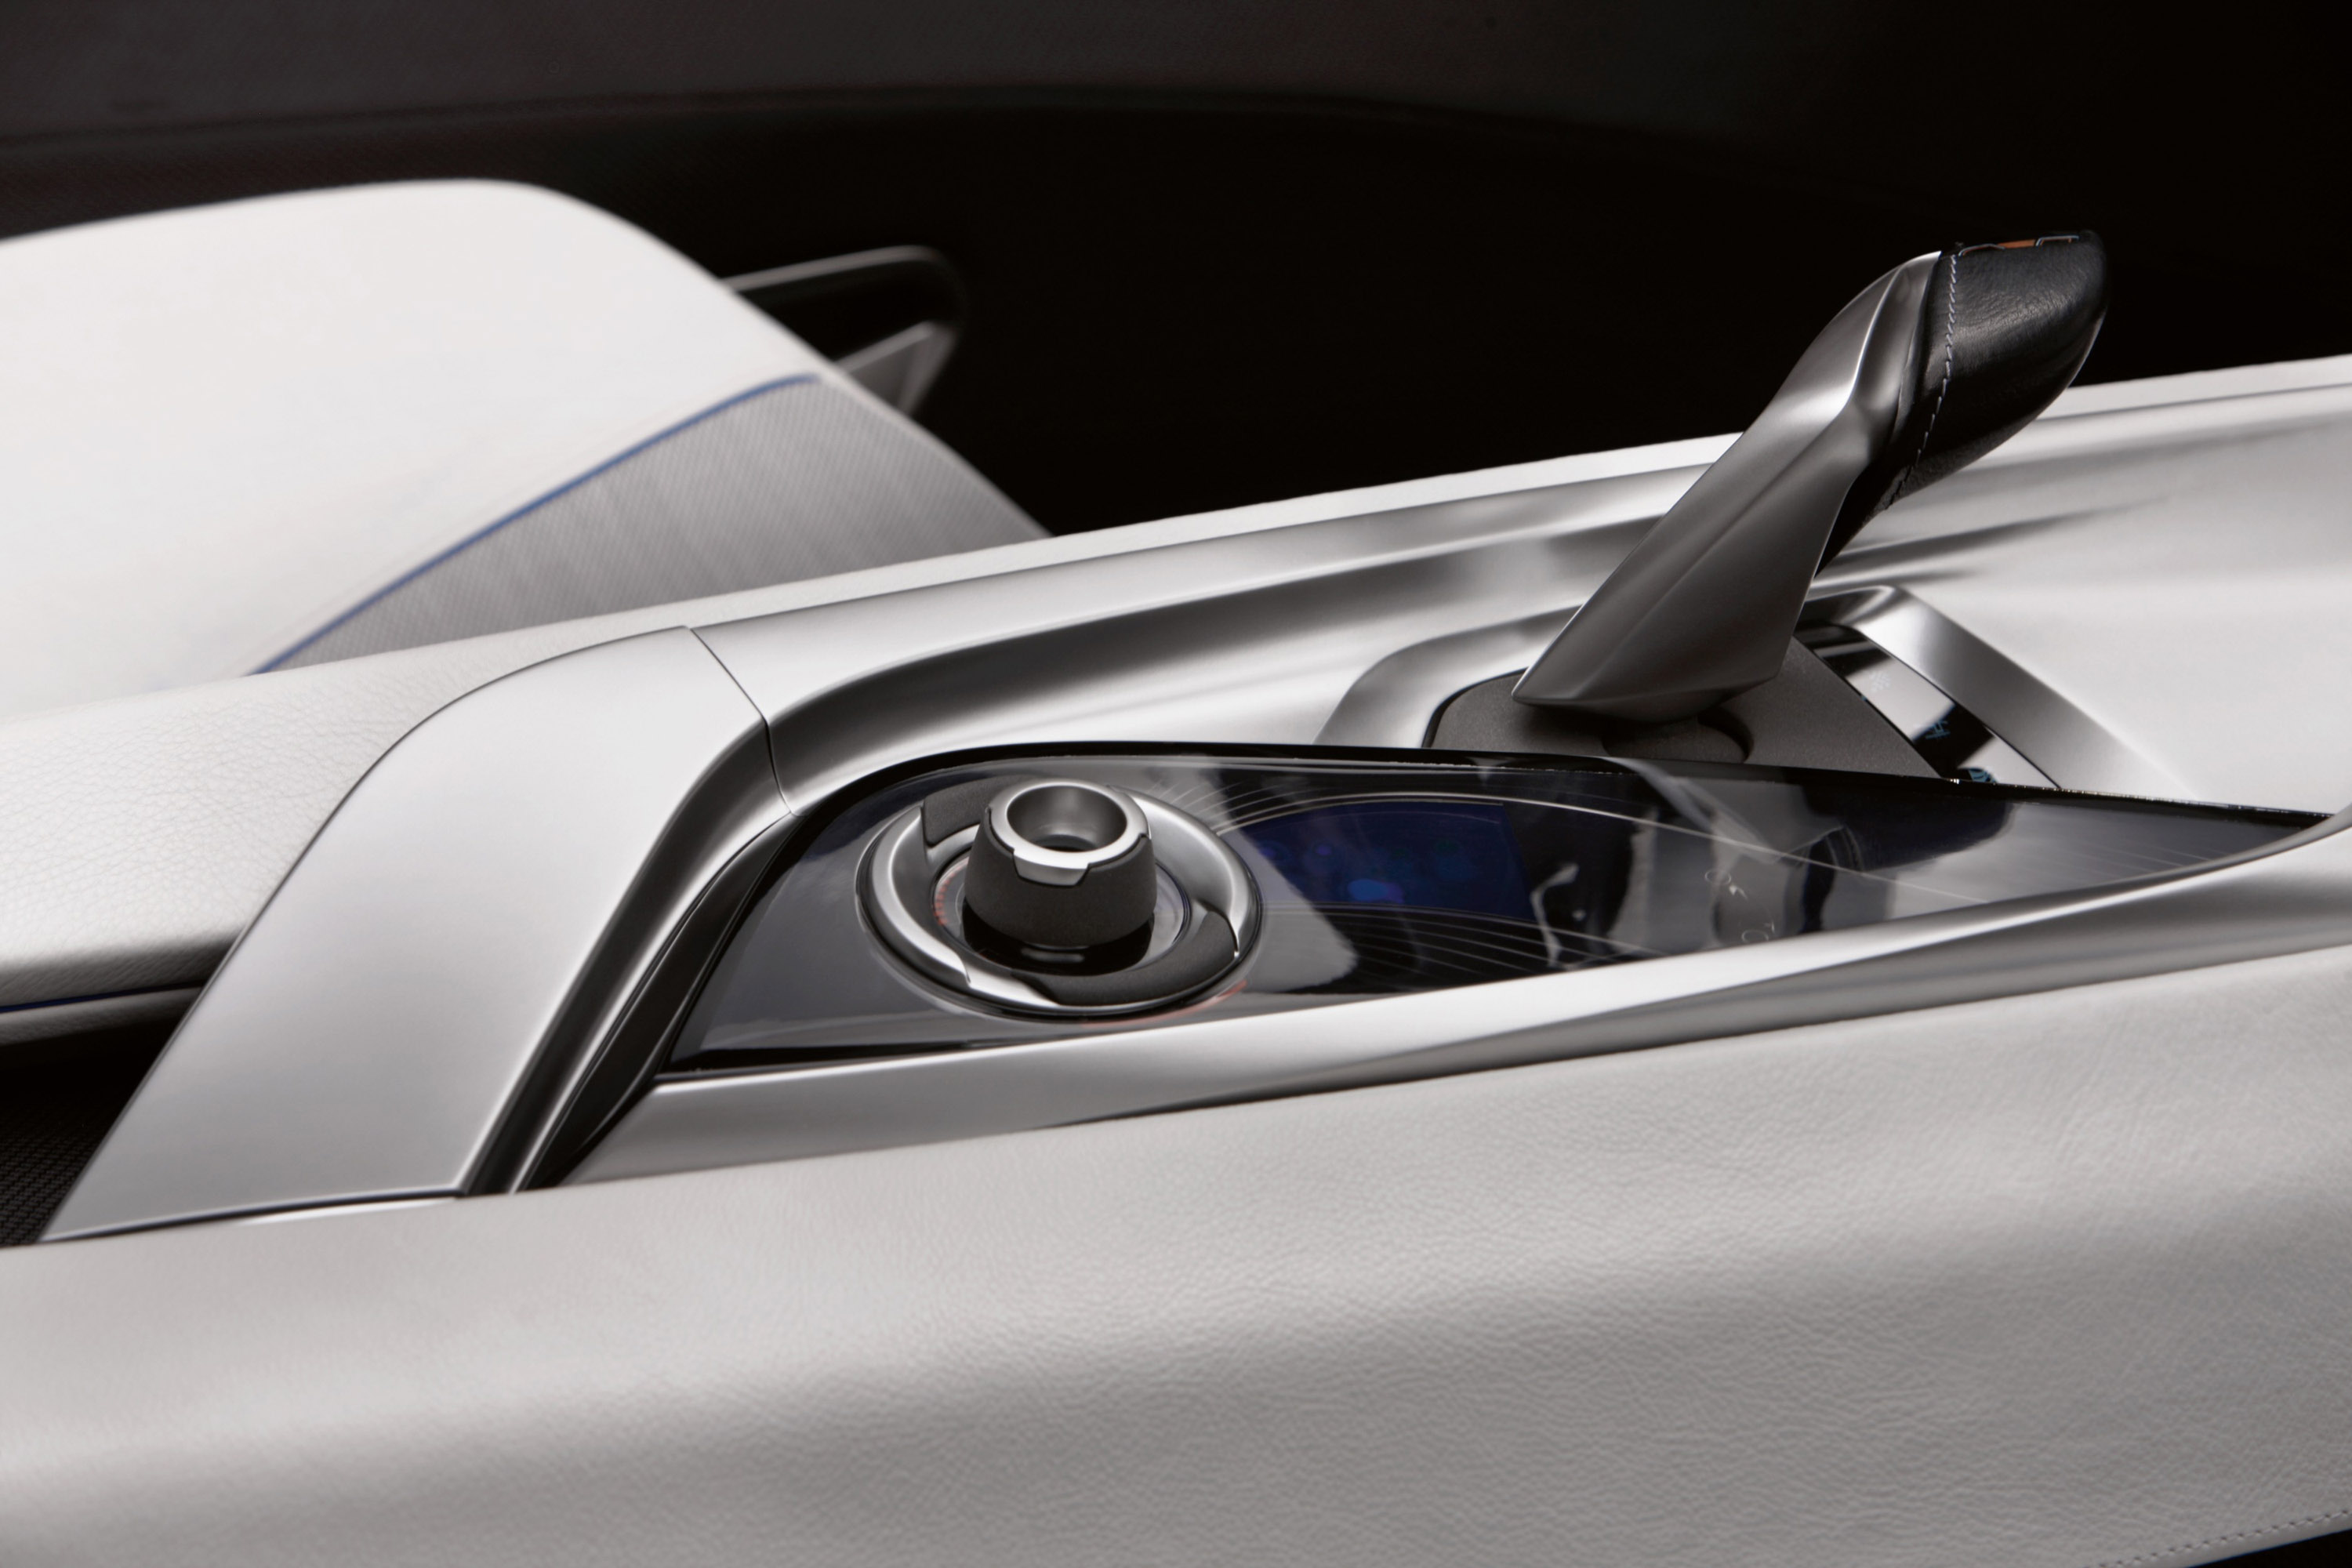 BMW Vision EfficientDynamics Concept - Picture 25041